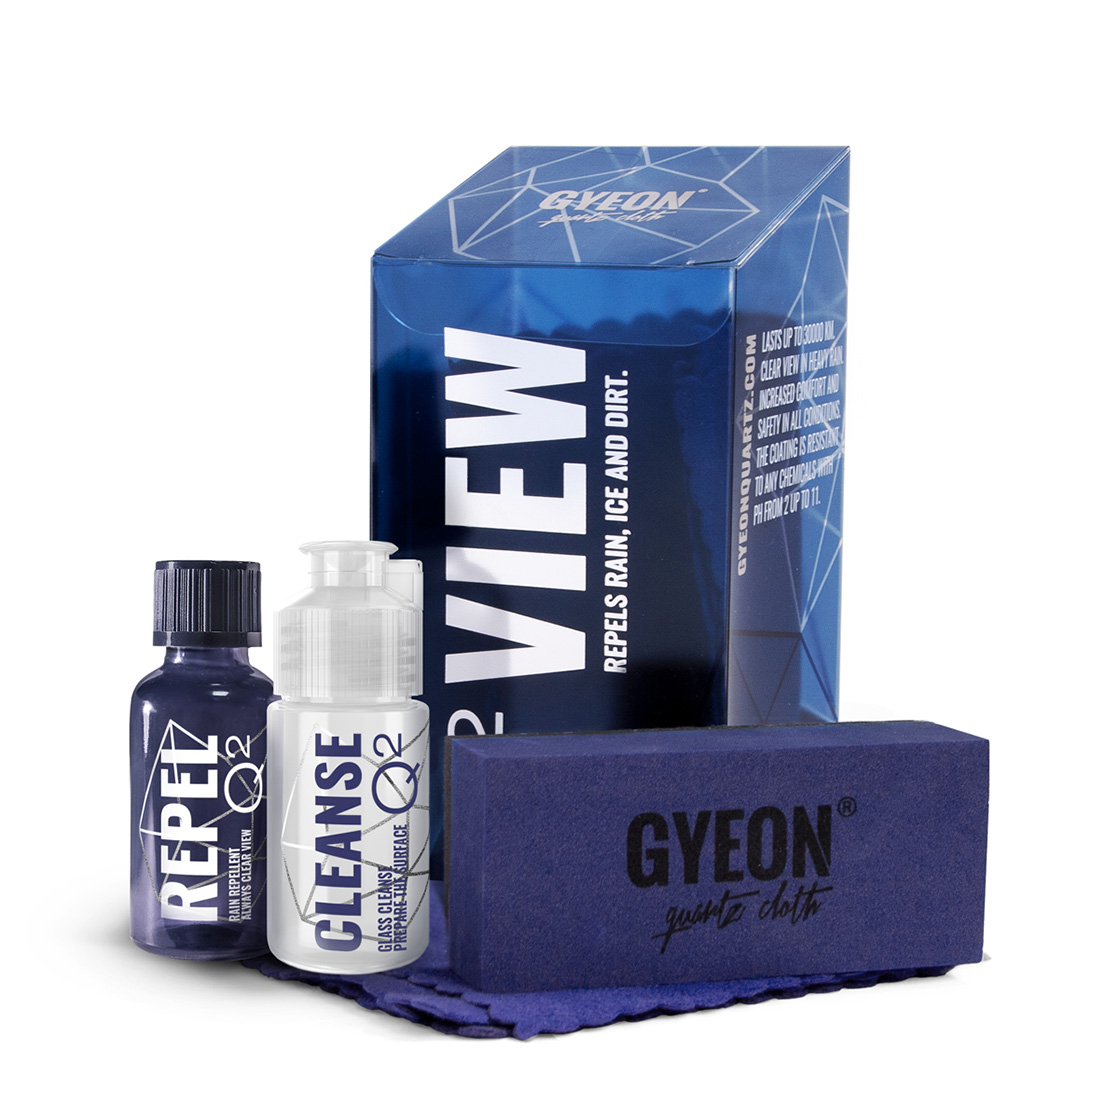 gyeon-q2-view-20ml